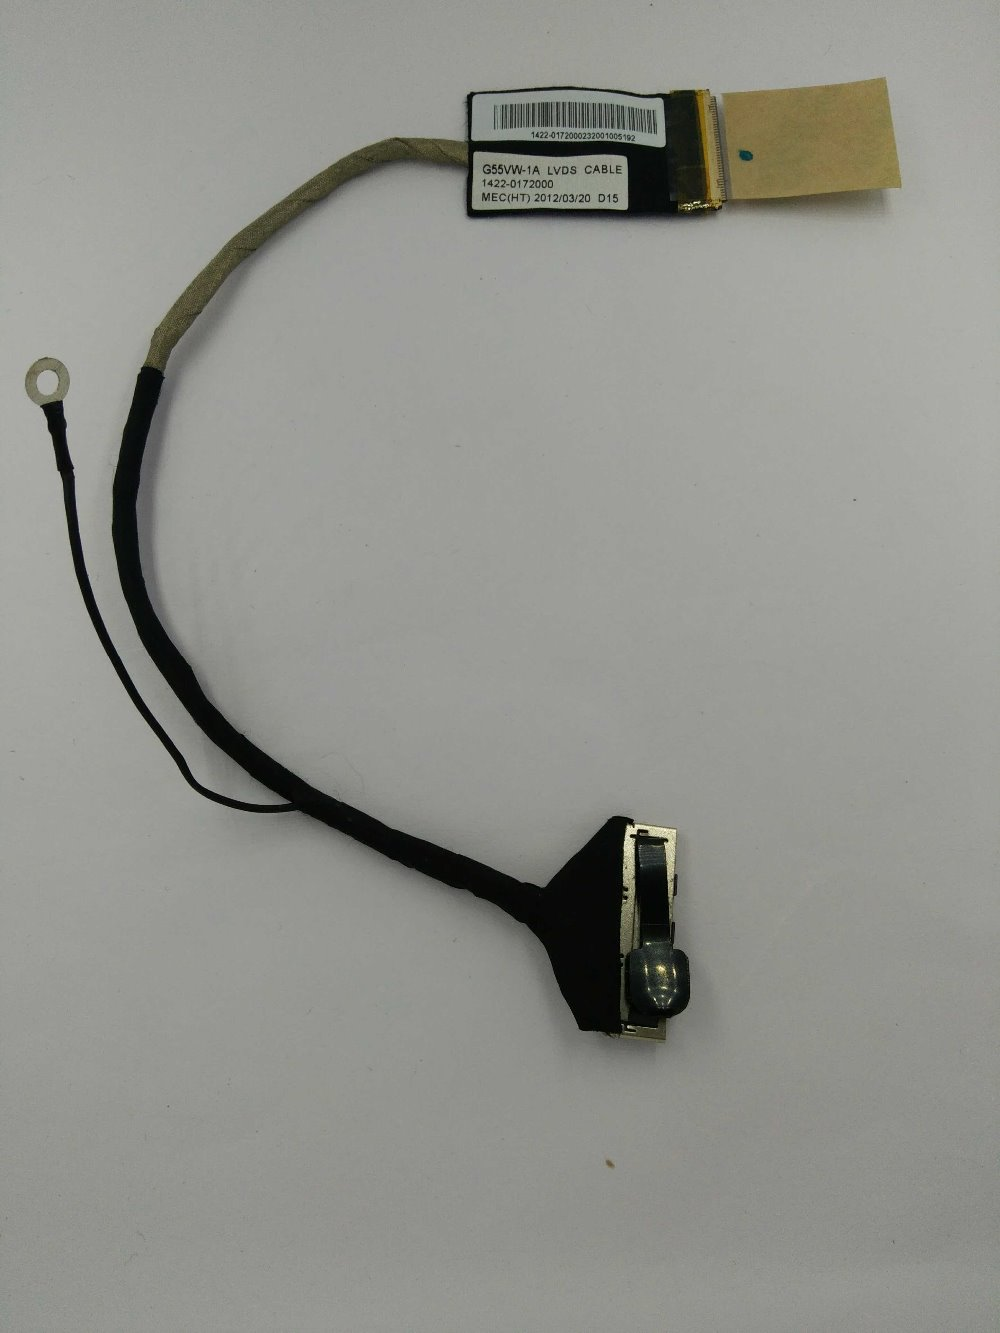 original free shipping  for ASUS G55 G55V G55VW-1A lcd lvds led cable G55VW 1422-0172000